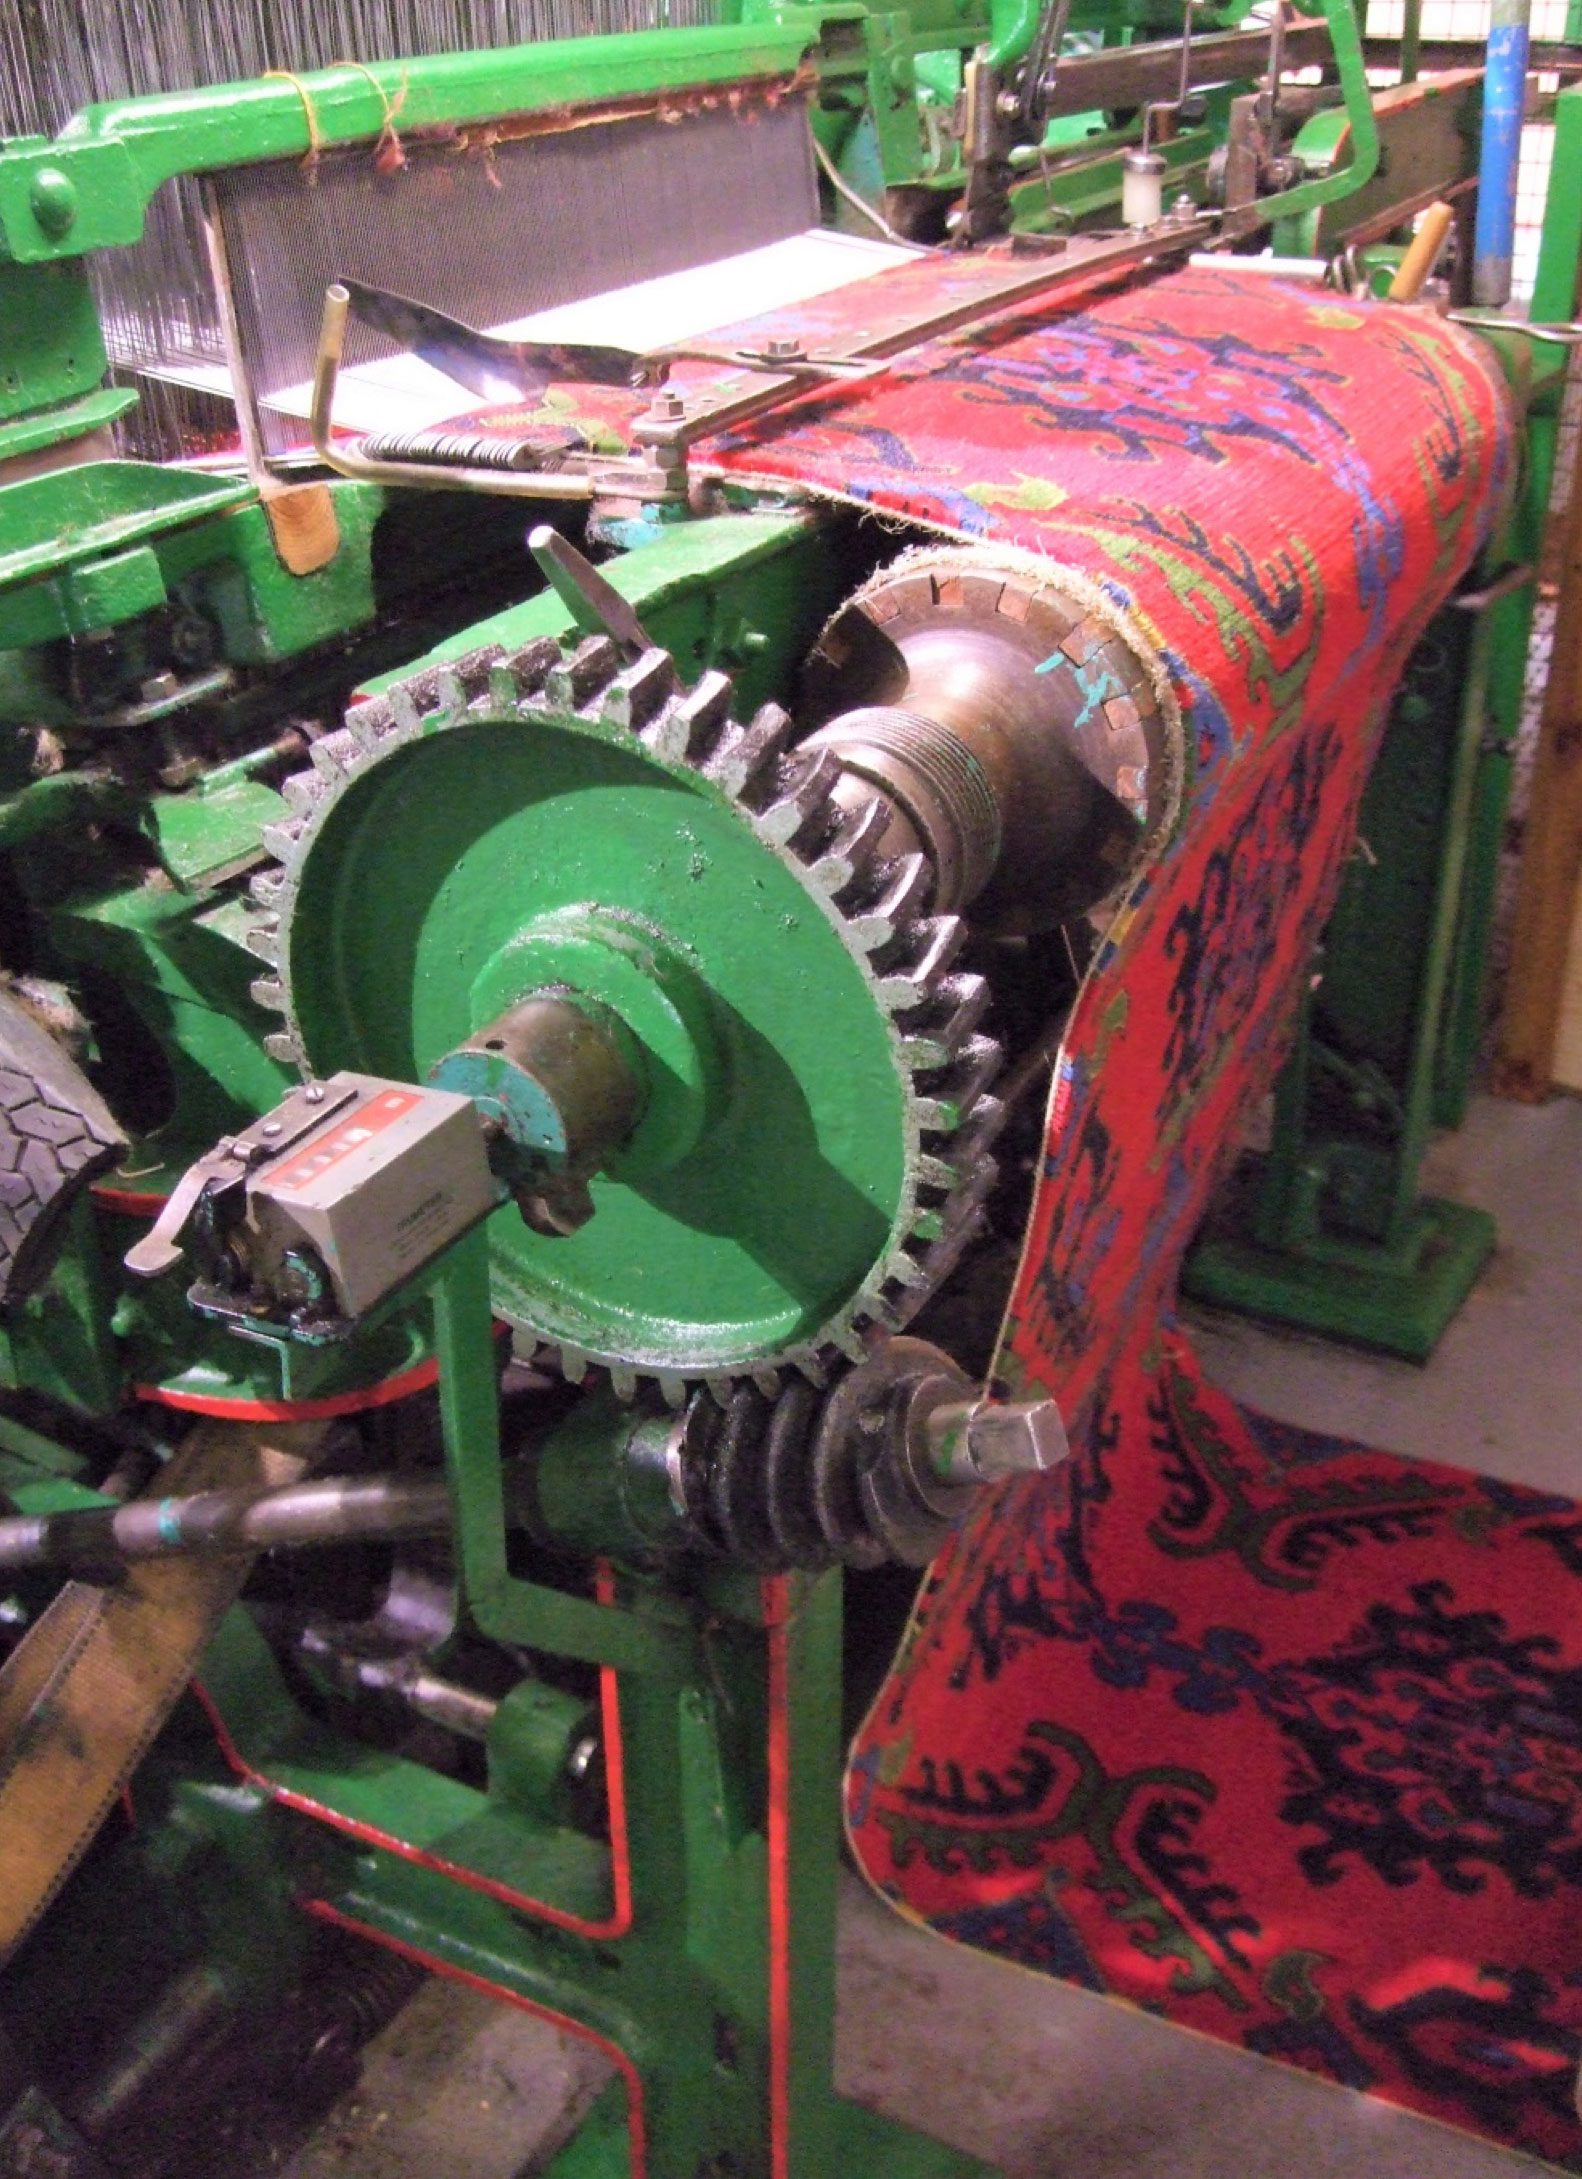 Wilton Jacquard Loom on display at the Museum of Carpet